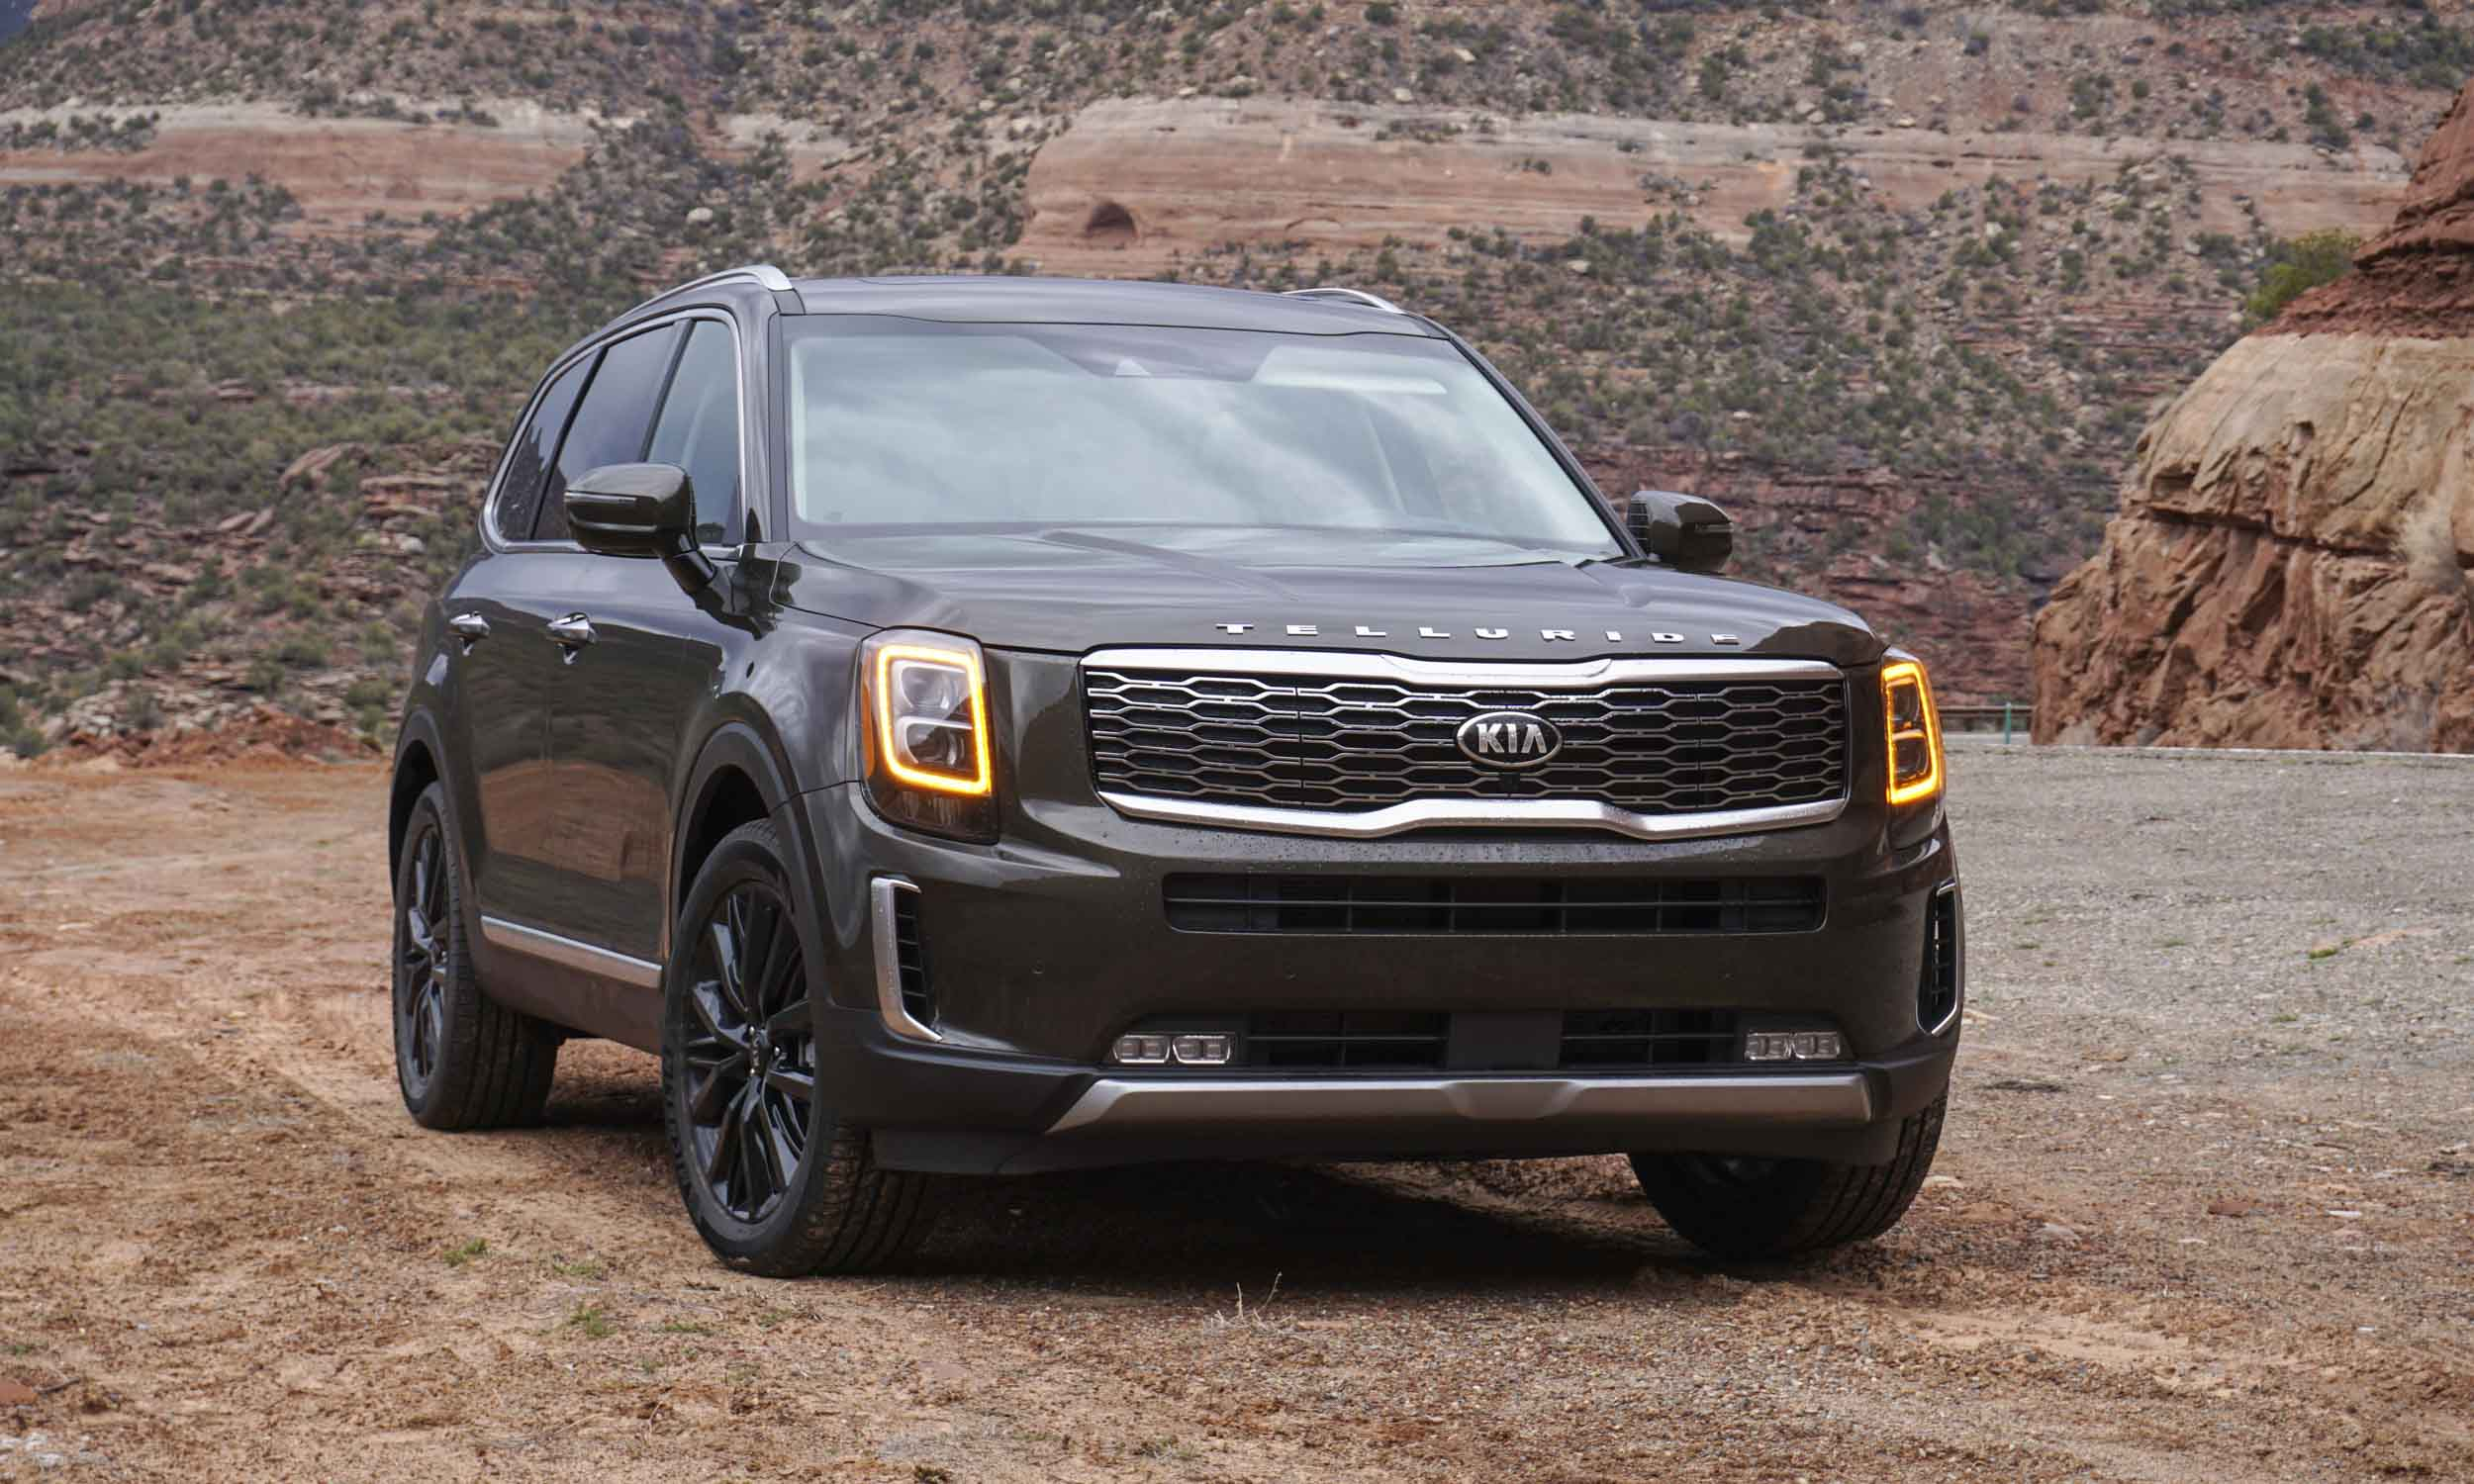 45 The 2020 Kia Telluride Ex Interior Performance and New Engine for 2020 Kia Telluride Ex Interior